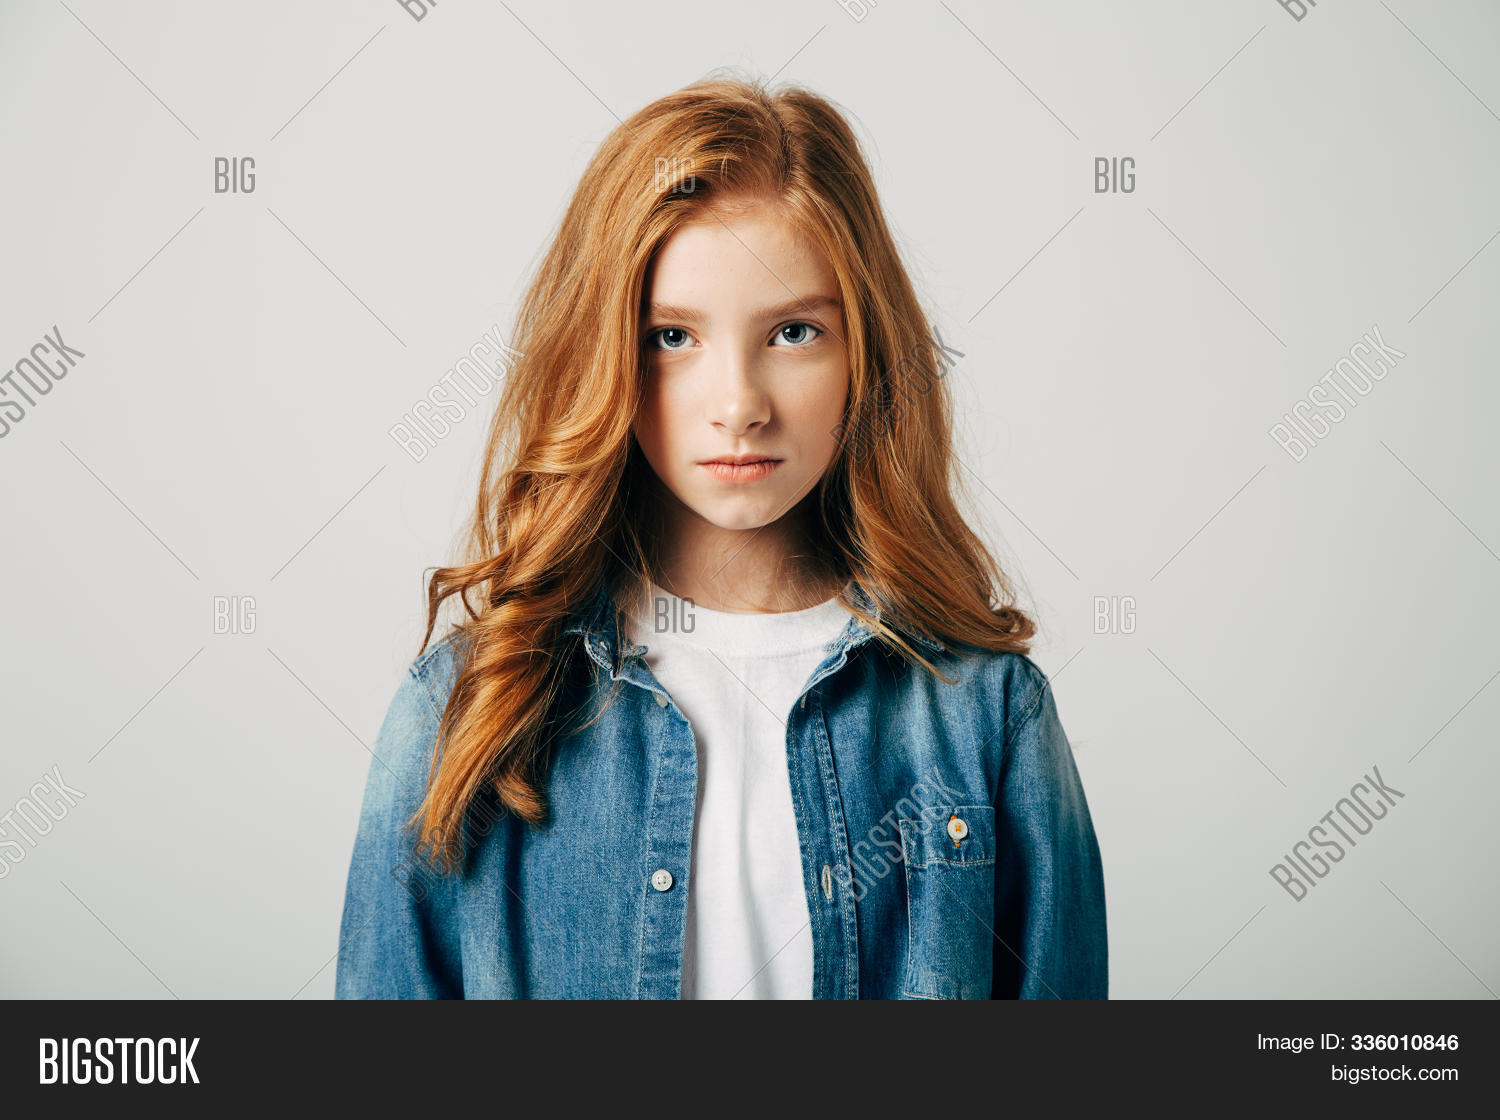 Very big picture teen